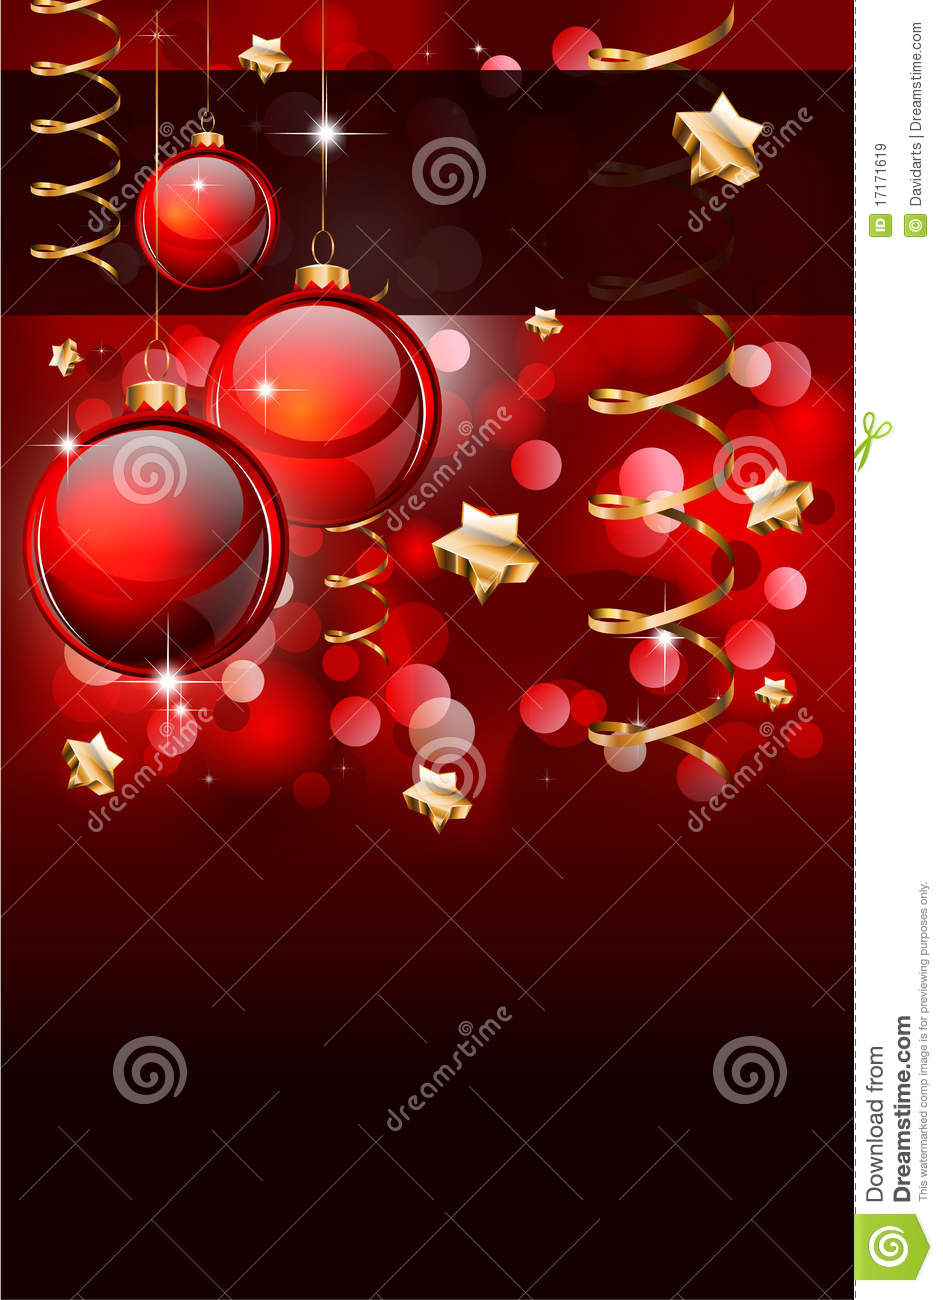 christmas elegant background for flyers or posters royalty christmas elegant background for flyers or posters